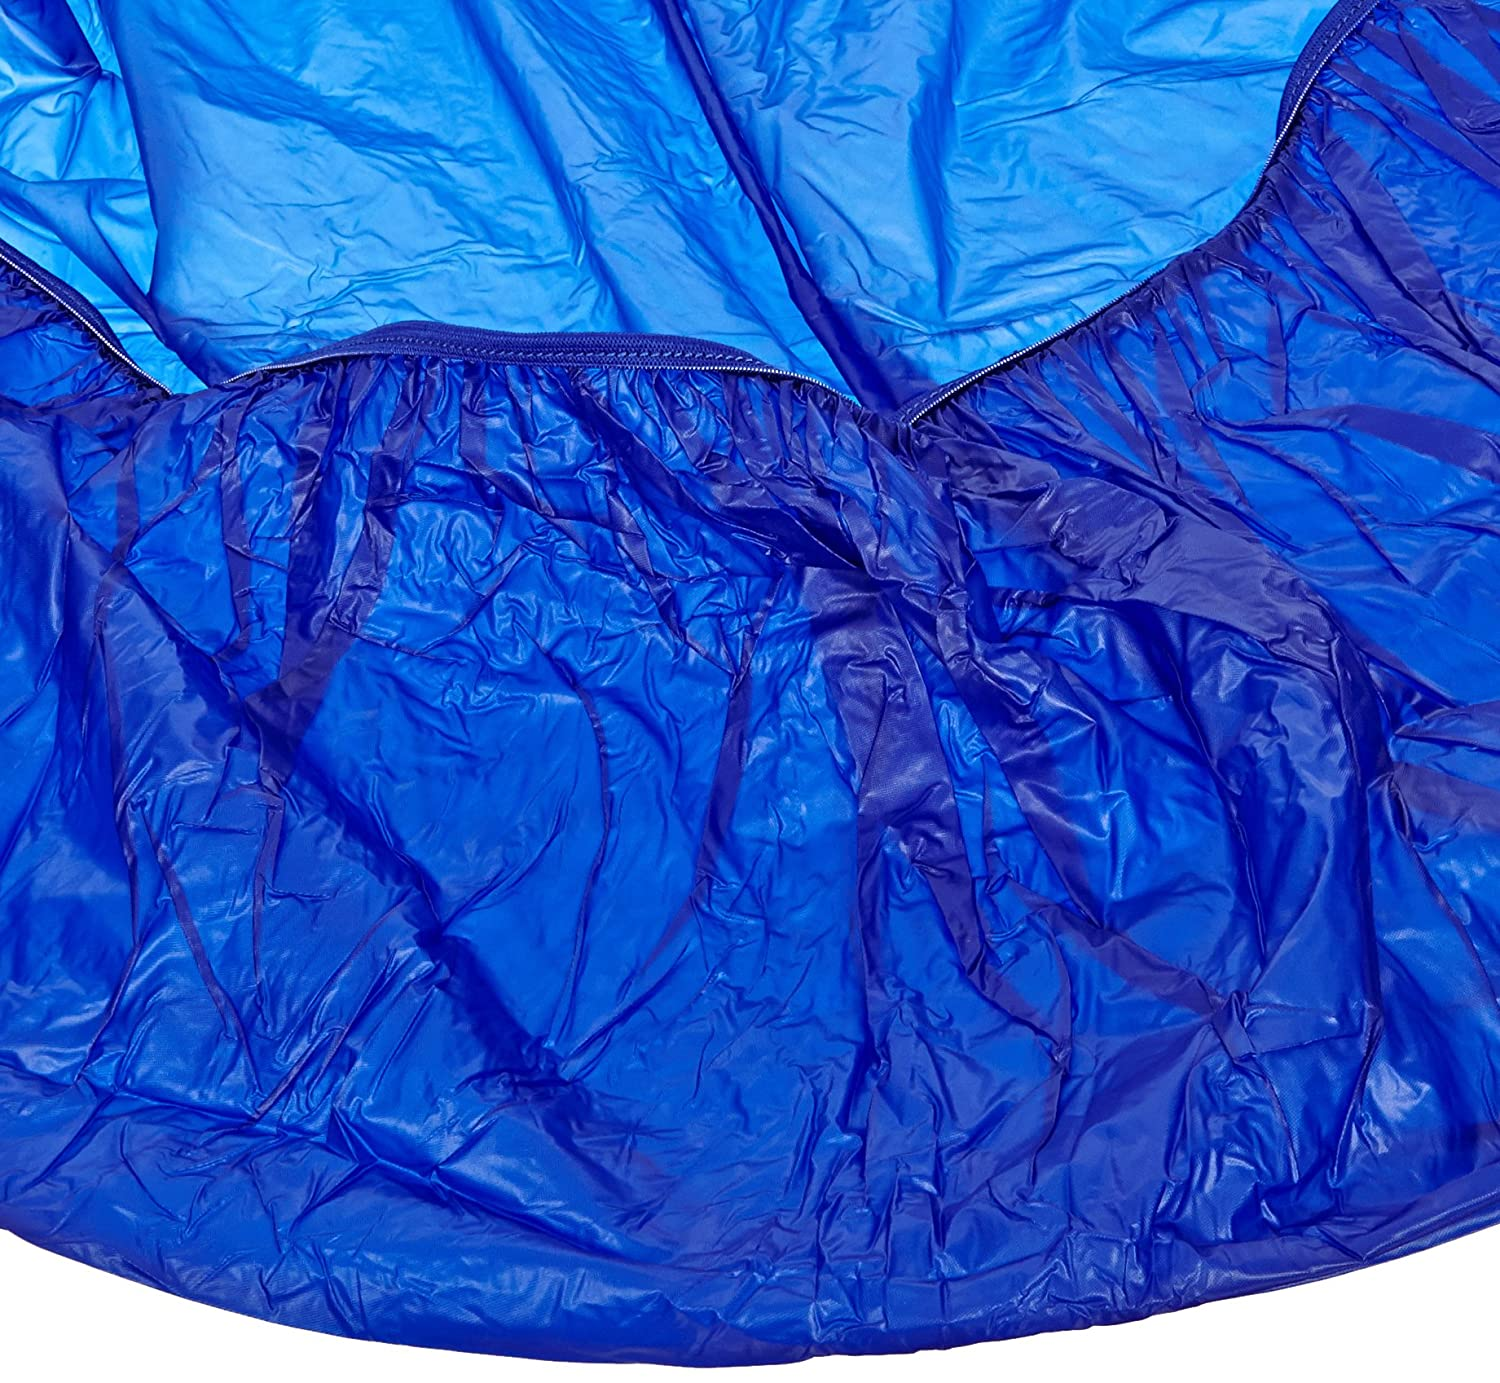 B001OU0MJY Kwik-Cover 60PK-B 60'' Round Kwik-Cover - Blue Fitted Table Cover (1 full case of 50) 912yoGfmmEL